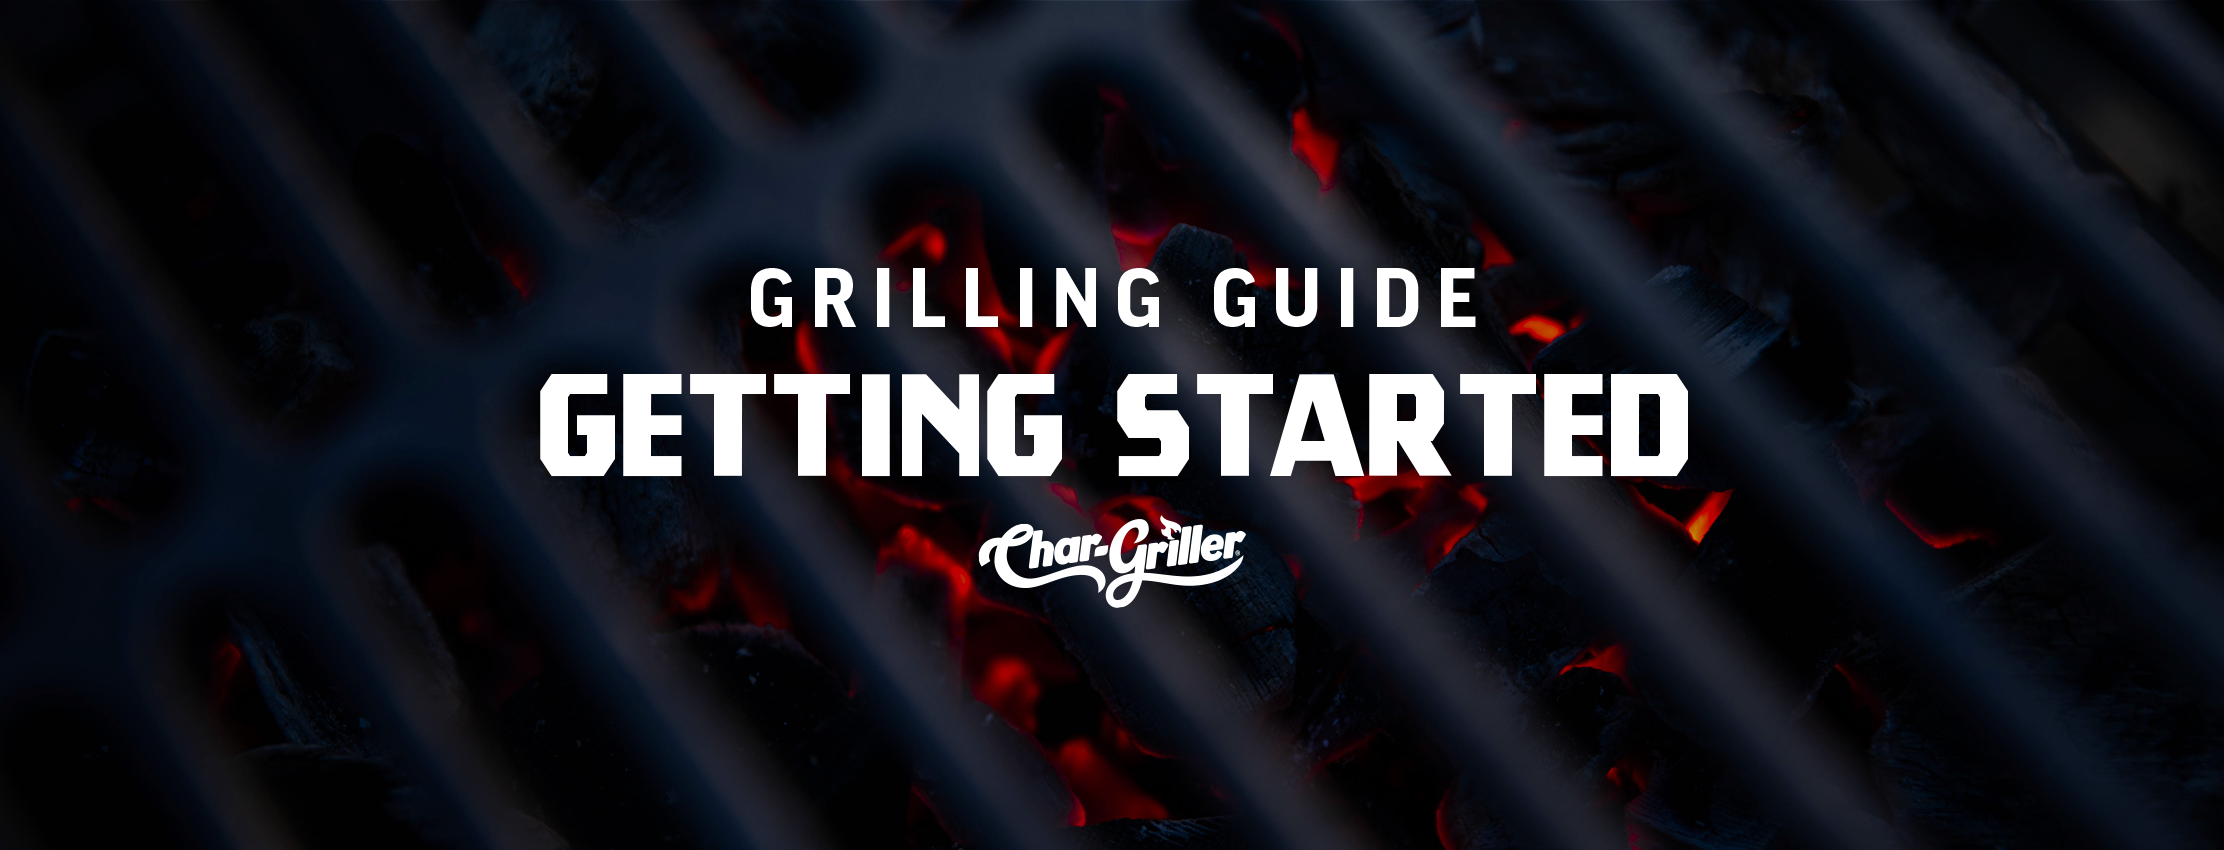 Grilling Guide: Getting Started